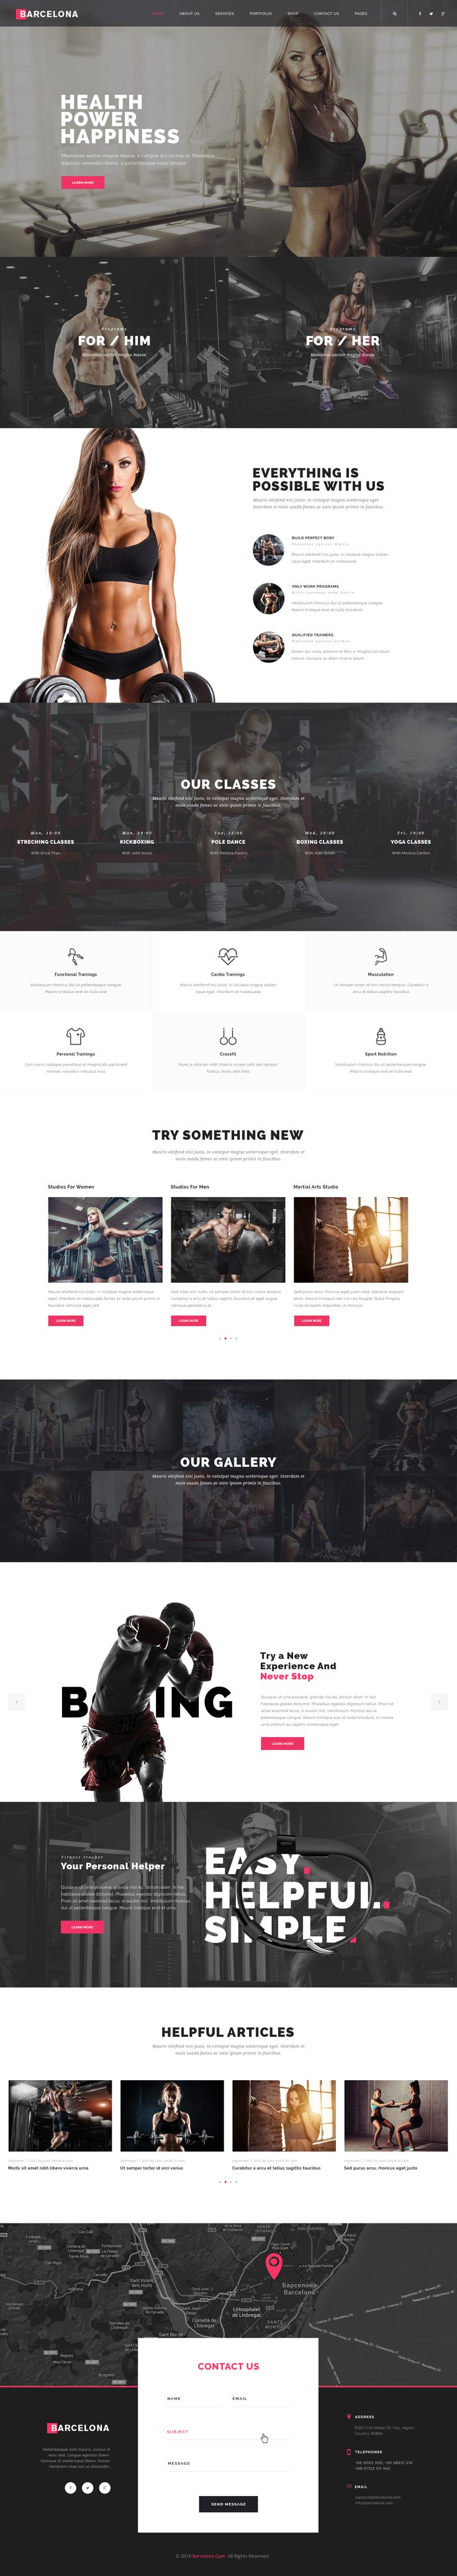 Barcelona - Sport, Gym, Fitness Template